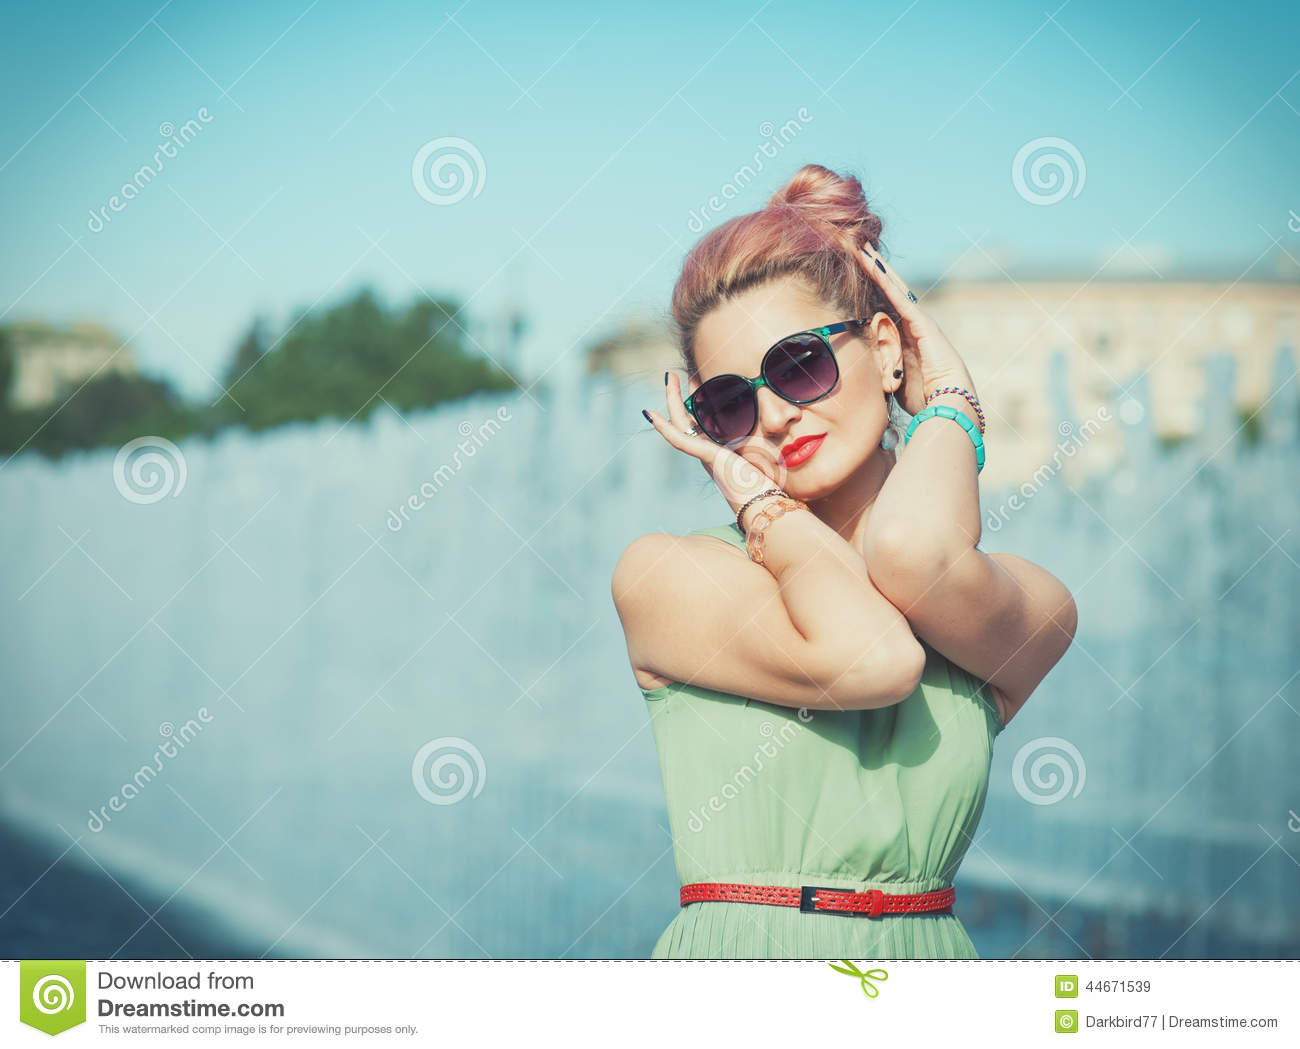 pinup young woman in vintage style clothing stock photography 60271616. Black Bedroom Furniture Sets. Home Design Ideas